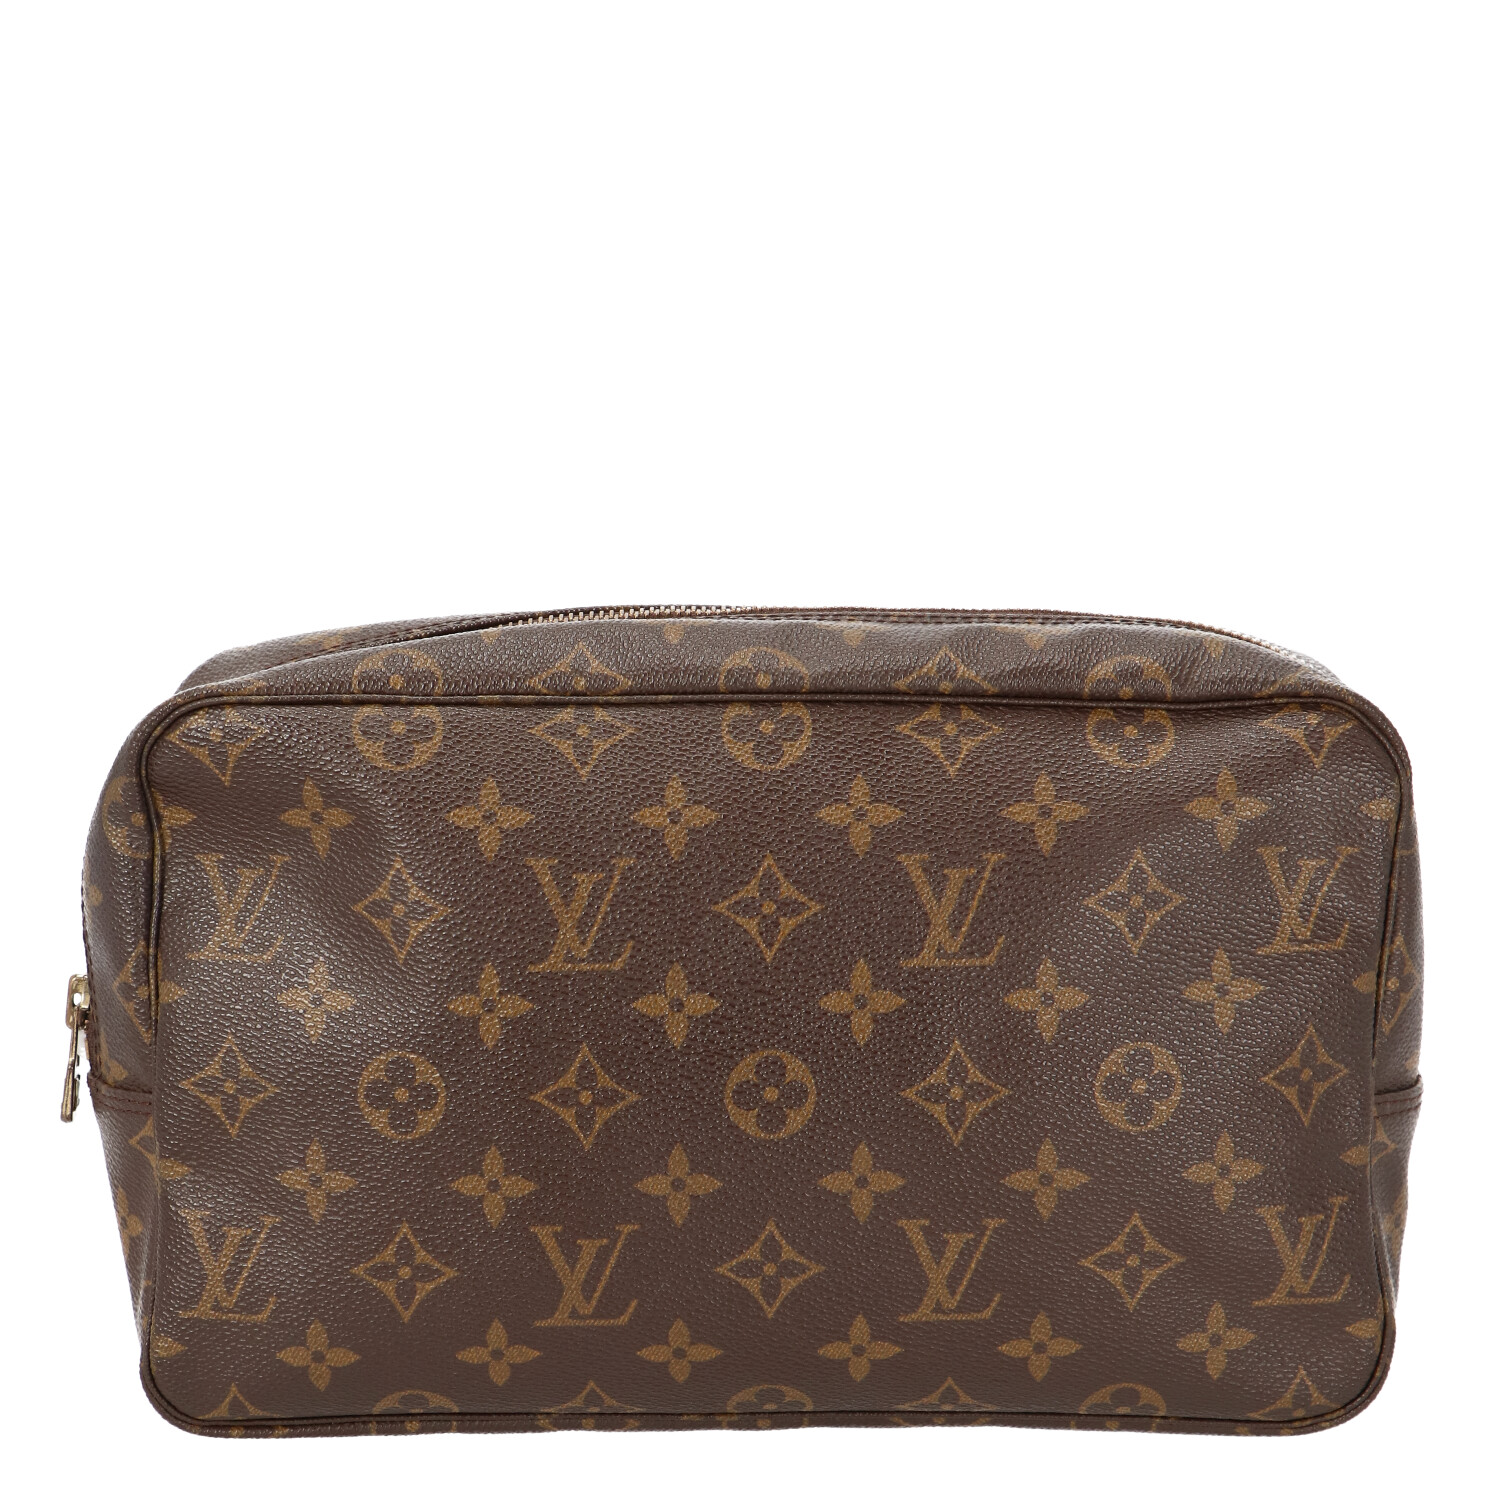 Monogram Canvas Trousse Toilette 28